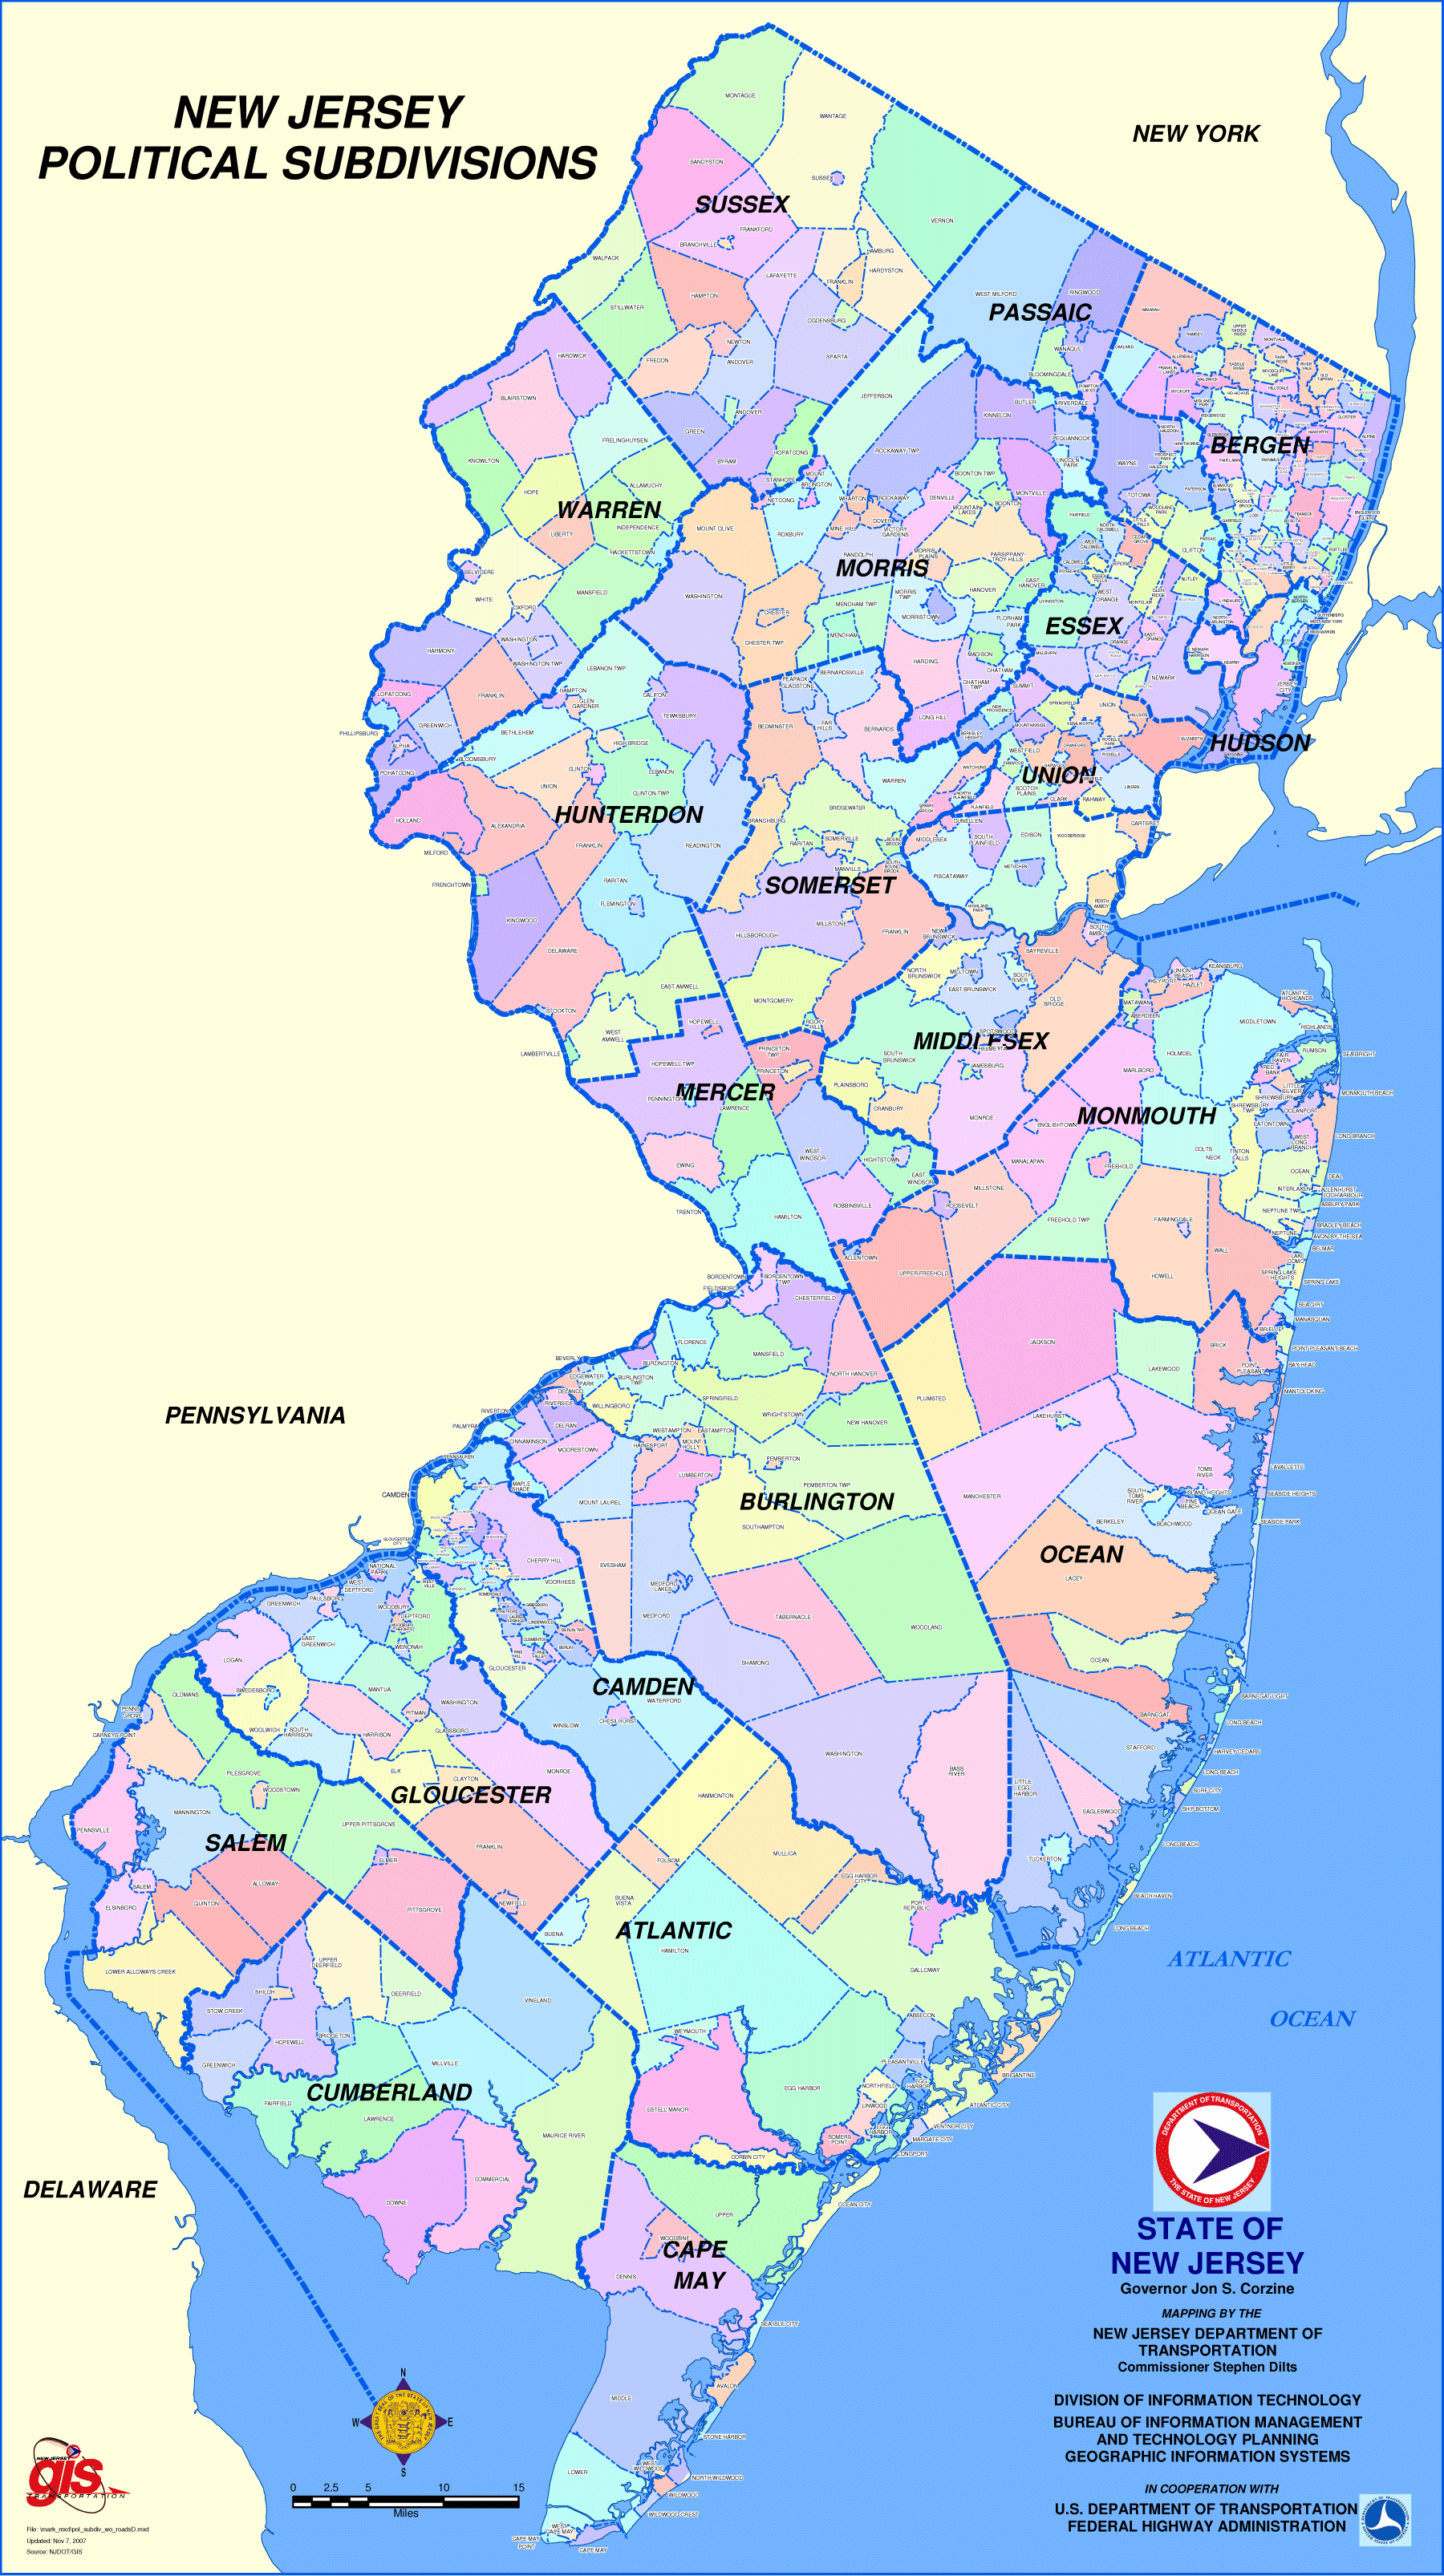 New Jersey Political Subdivisions Map